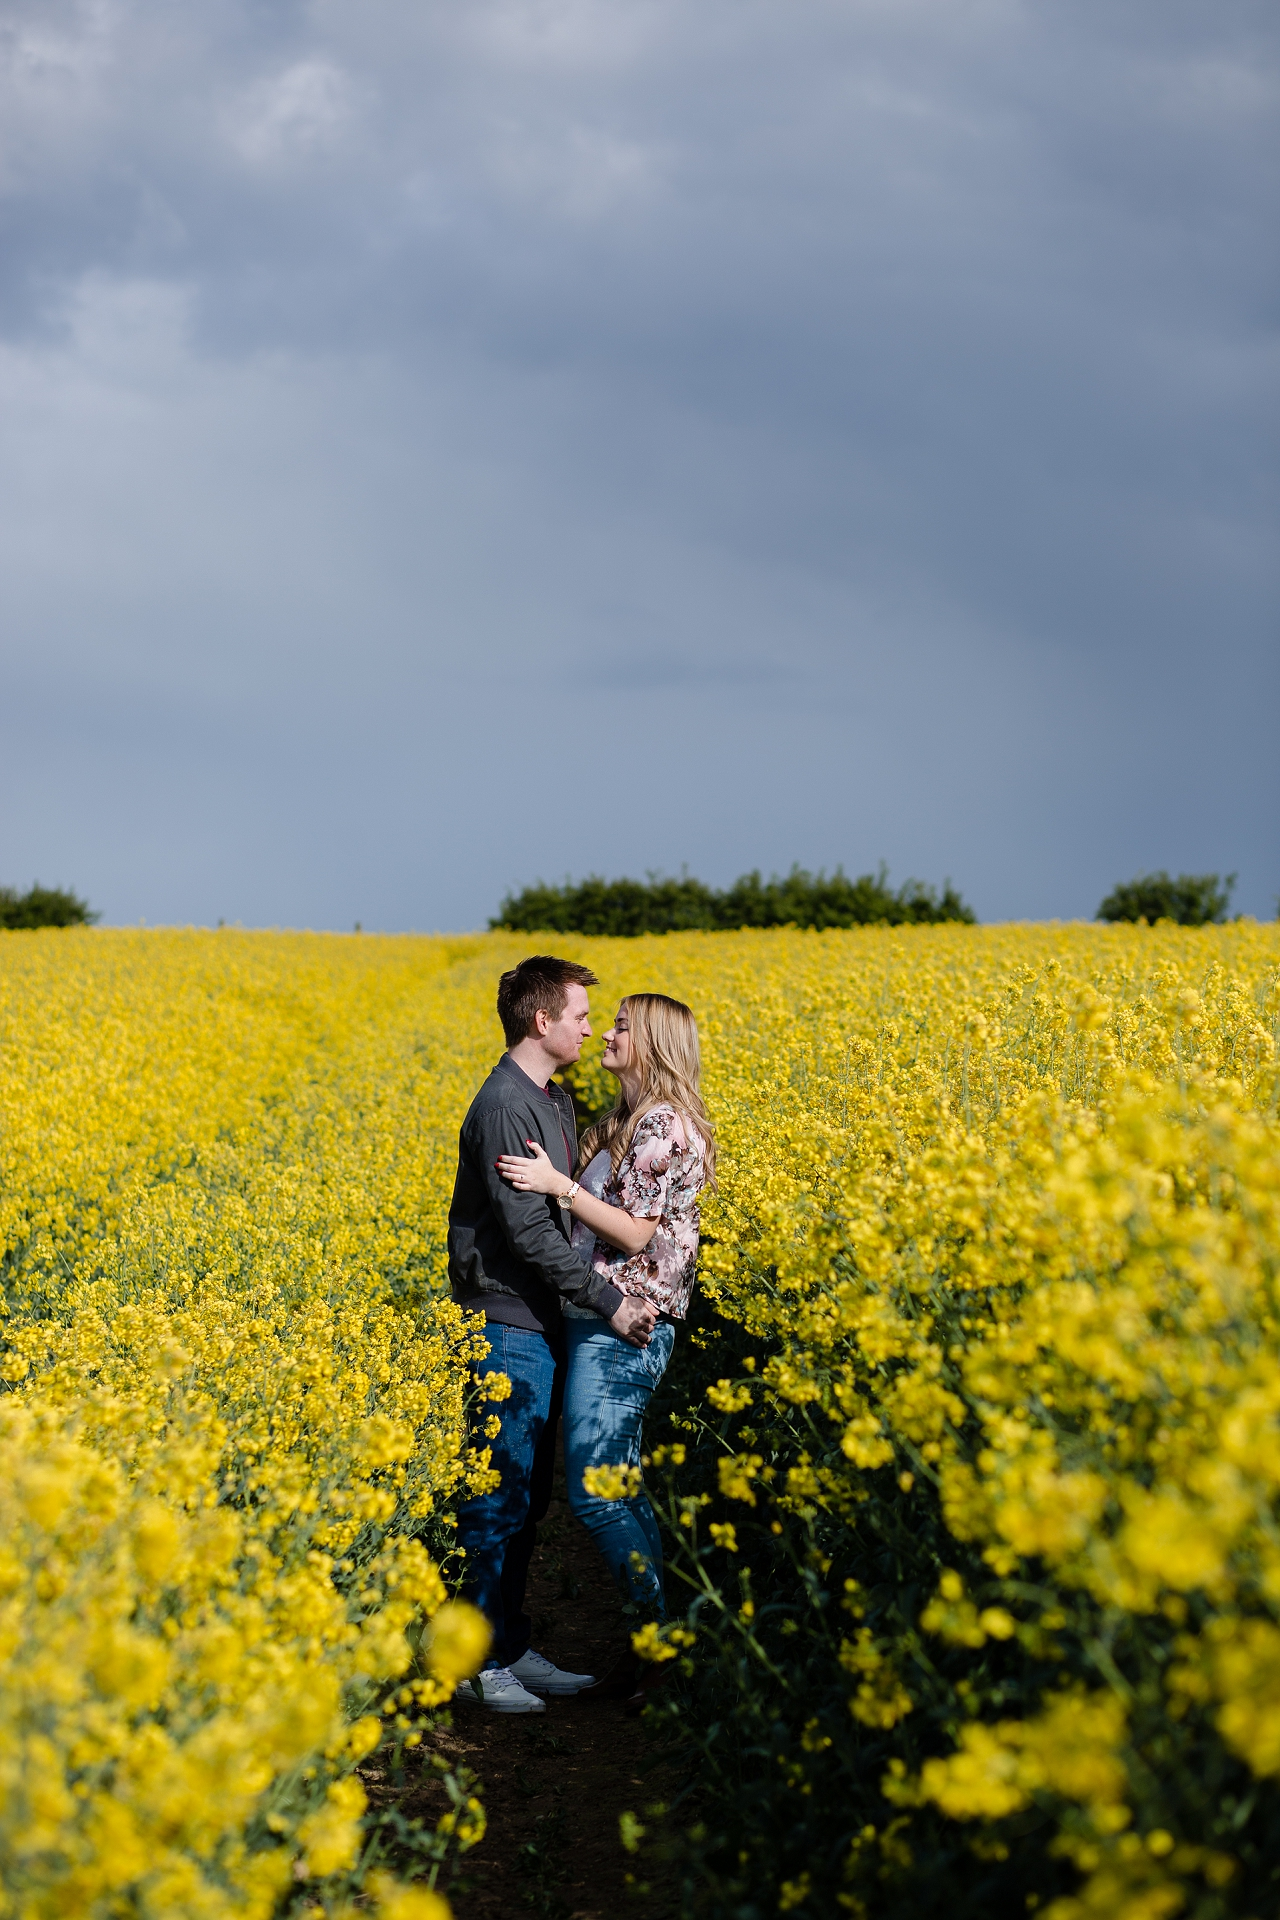 engagement session in a corn field